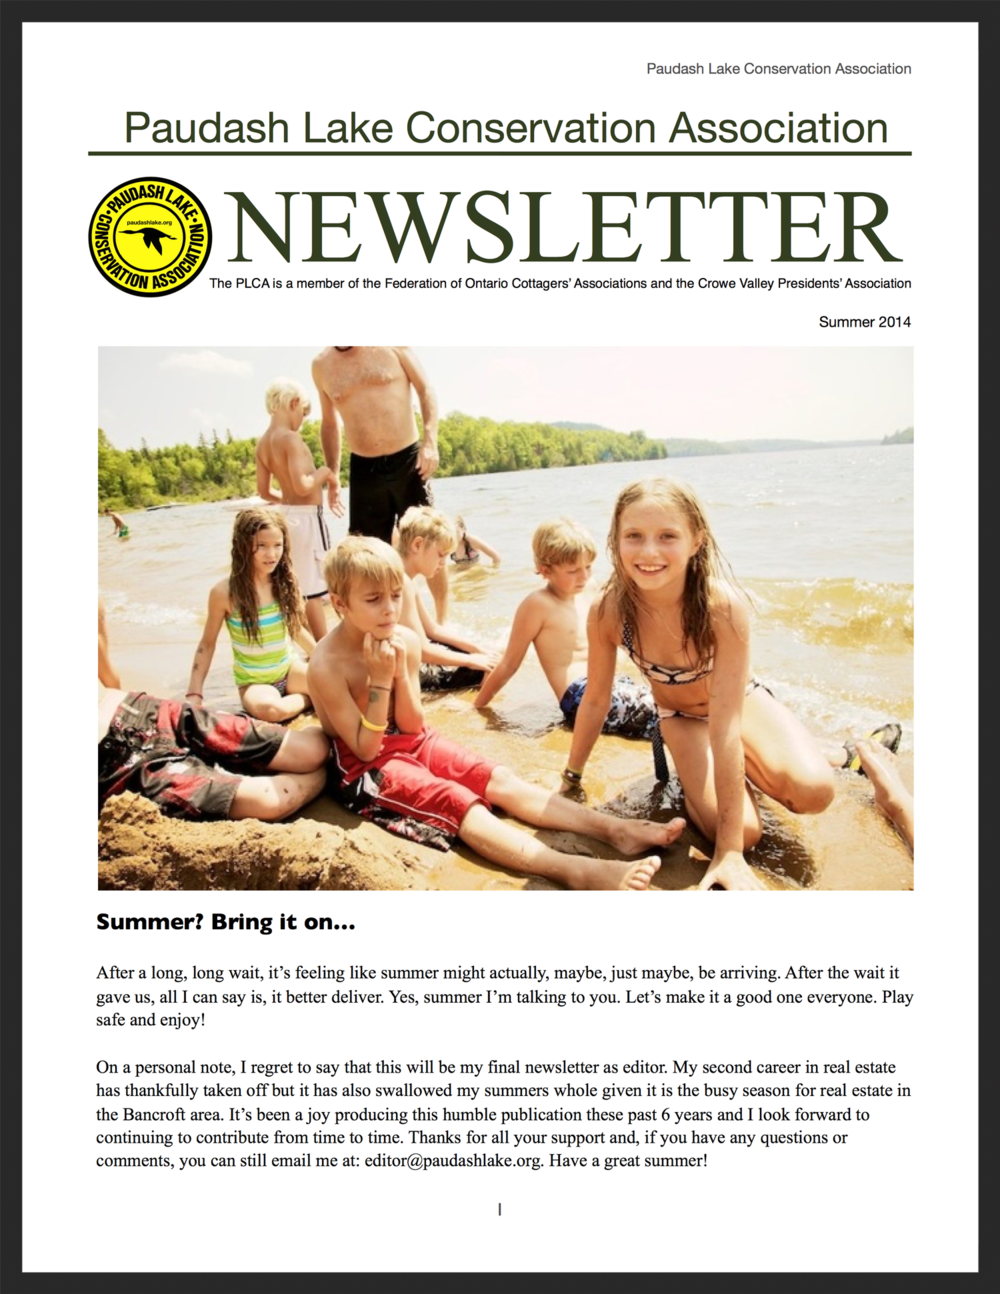 PLCA Newsletter, summer 2014